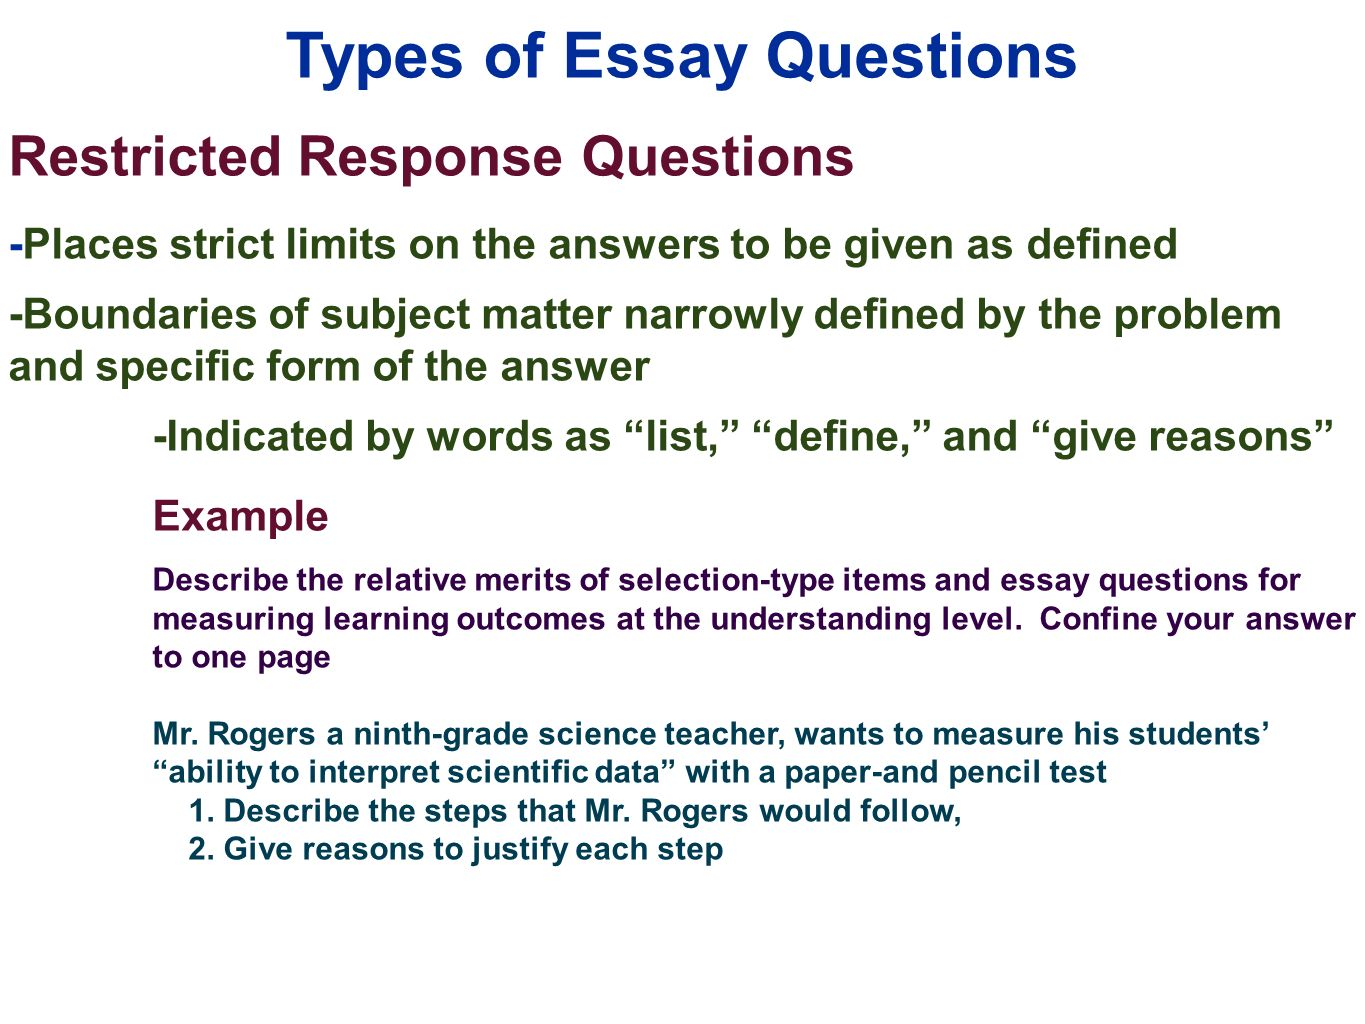 Essay questions and answers